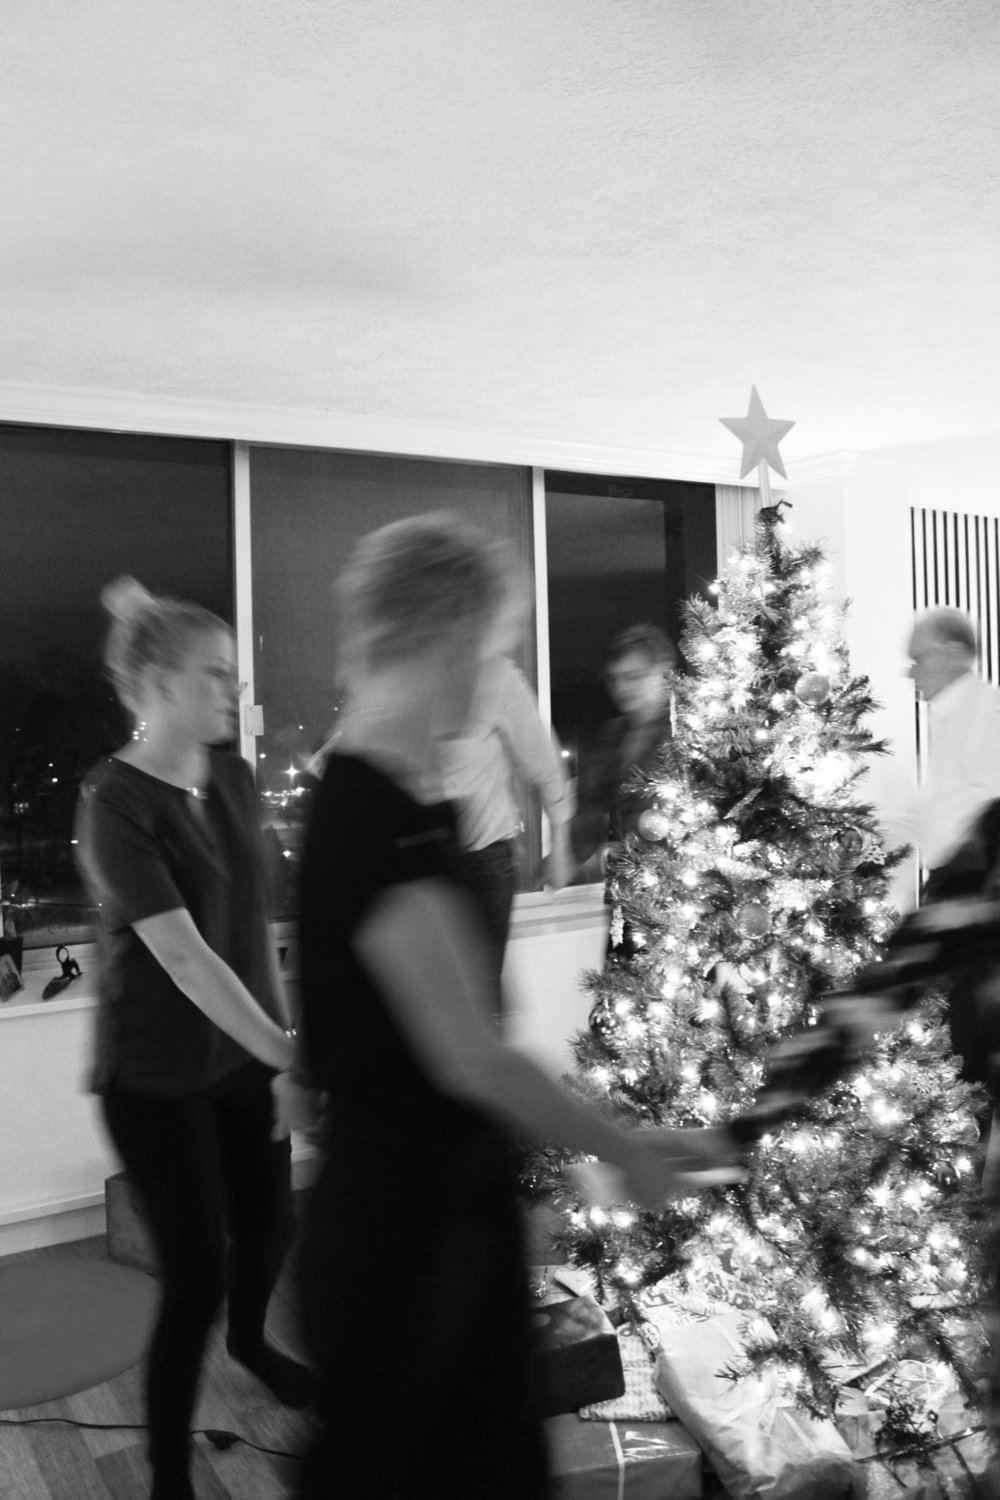 The evening wraps up with dancing and singing around the Christmas tree after which the gift unwrapping begins! :) Promise me that you will have some hygge today where ever you are. I wish you and your family a Merry Christmas.